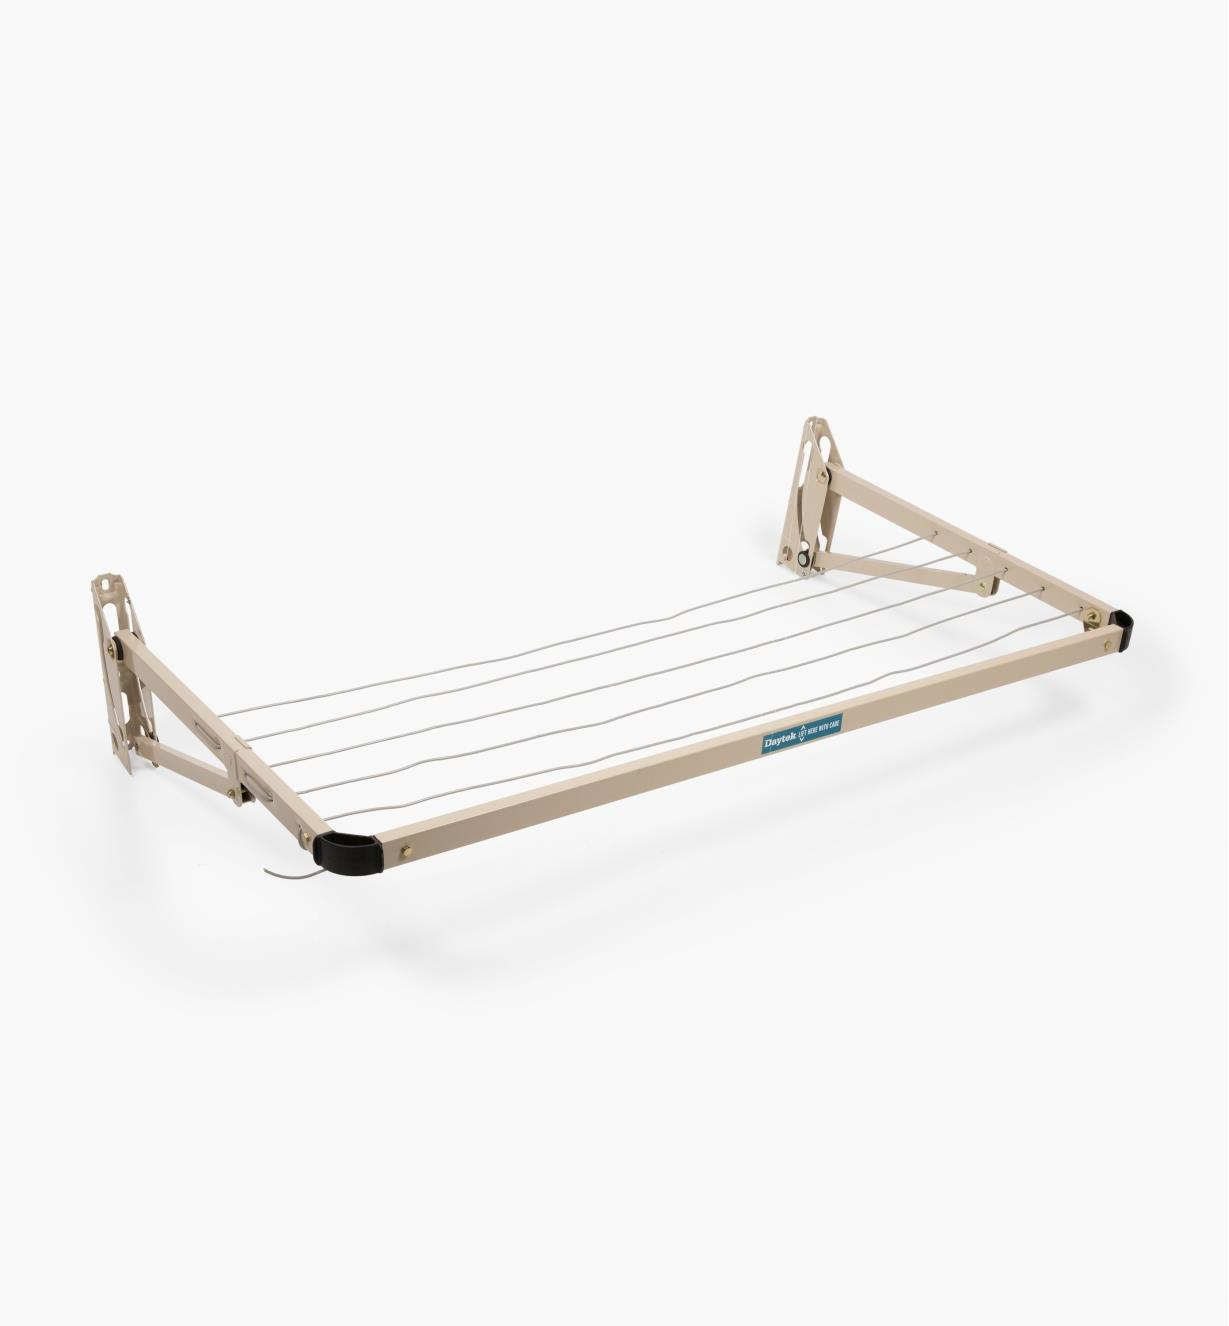 Folding Drying Rack Lee Valley Tools